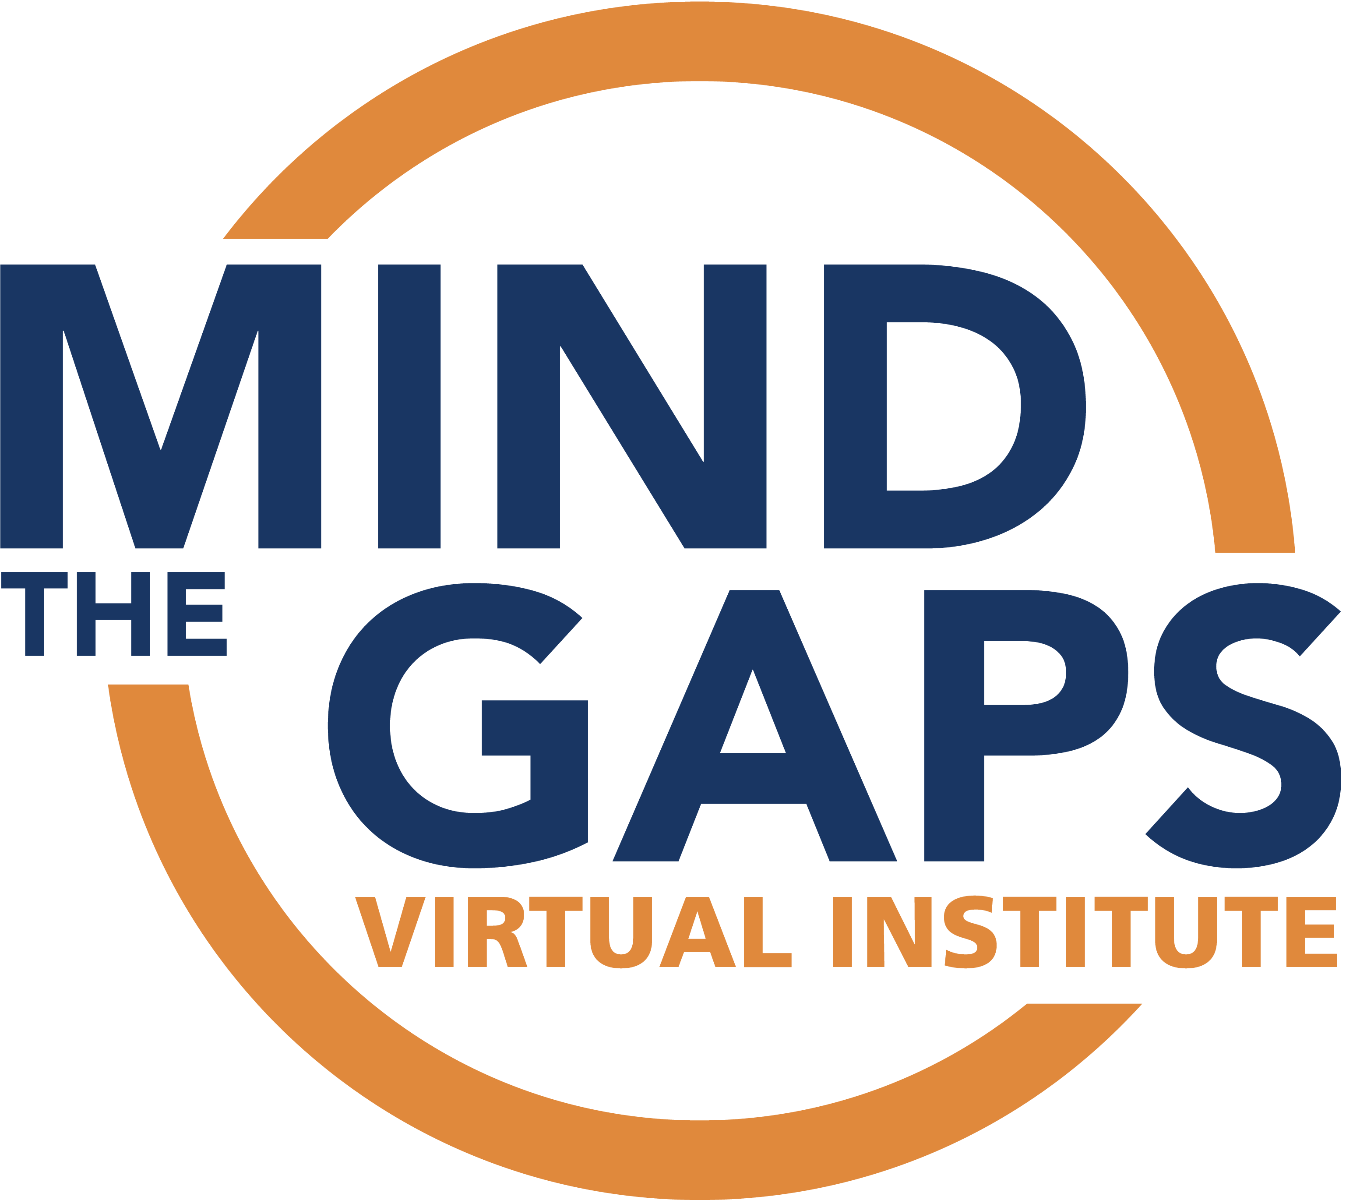 Mind the Gaps Virtual Institute